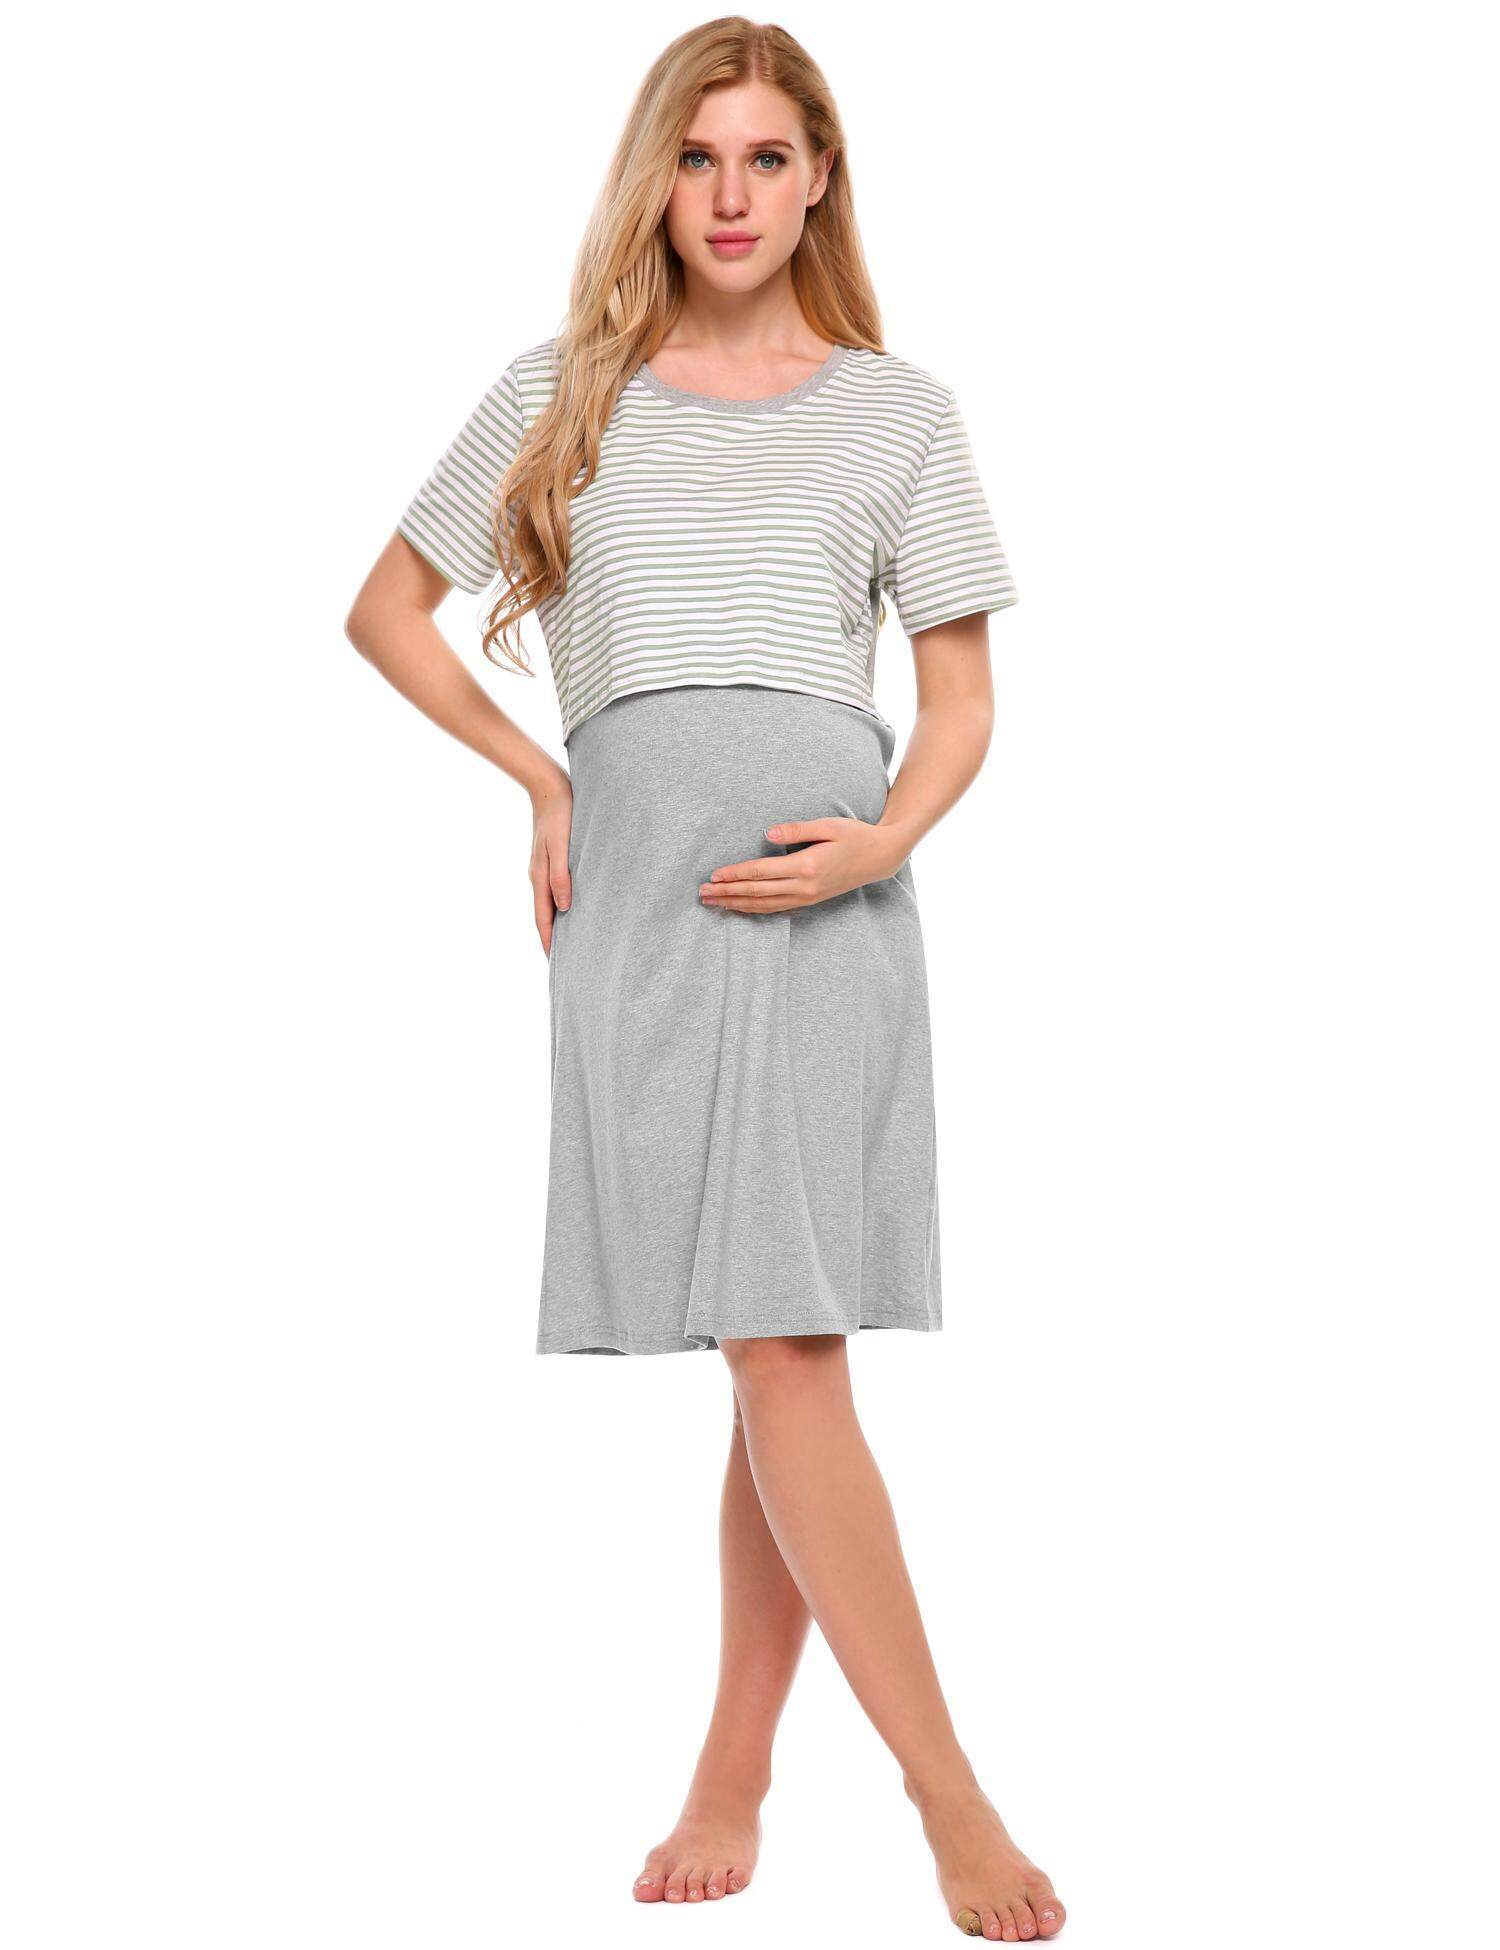 How To Get New Arrival Astar Women Maternity Nightgown Nursing Dress Short Sleeve Striped Lounge Sleepwear Intl